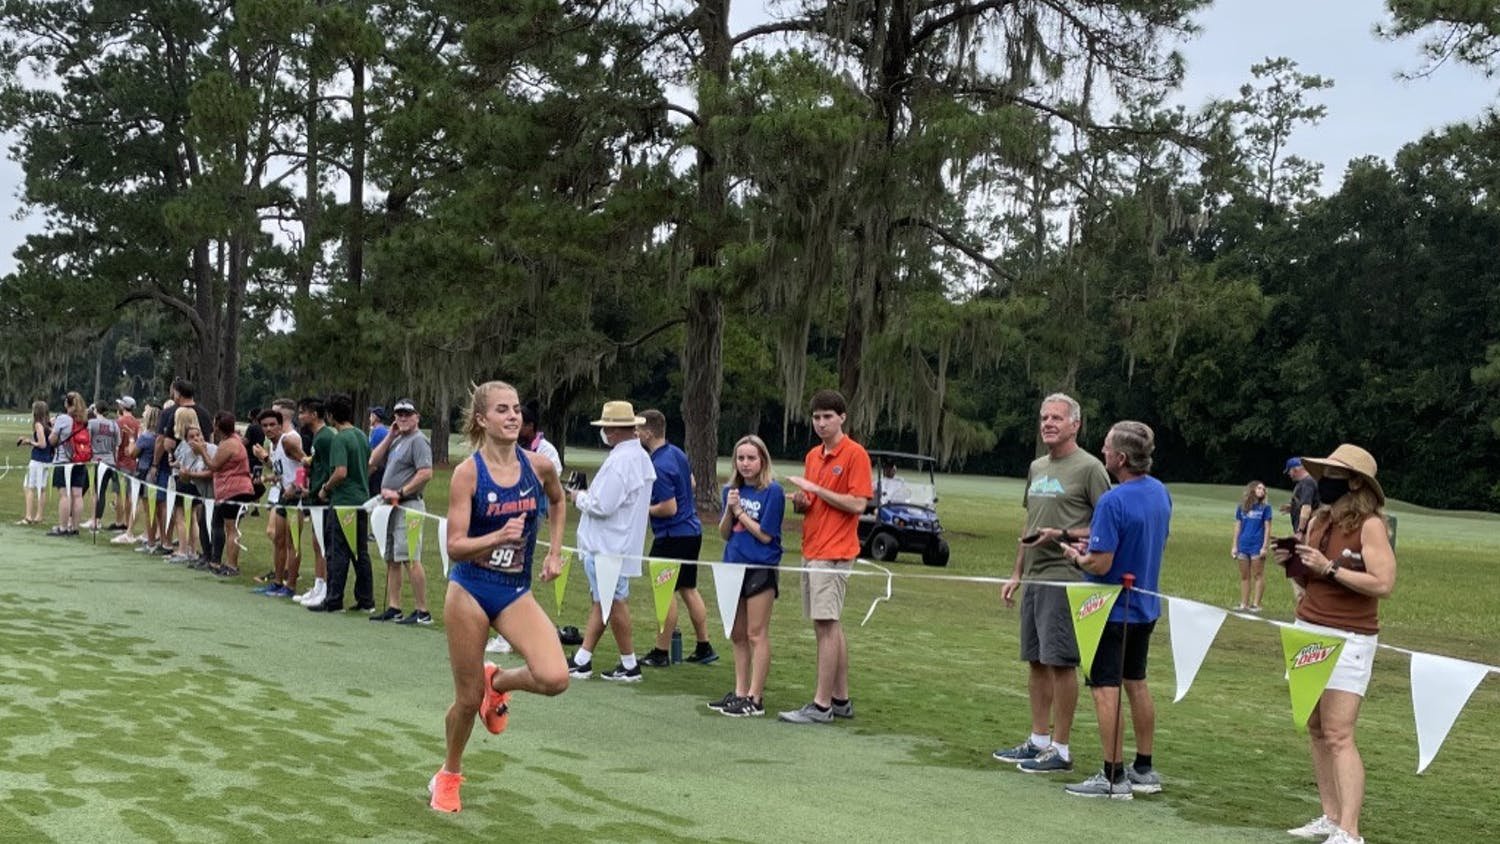 Florida's Parker Valby competes during the Mountain Dew Invitational in Gainesville on Sept. 11